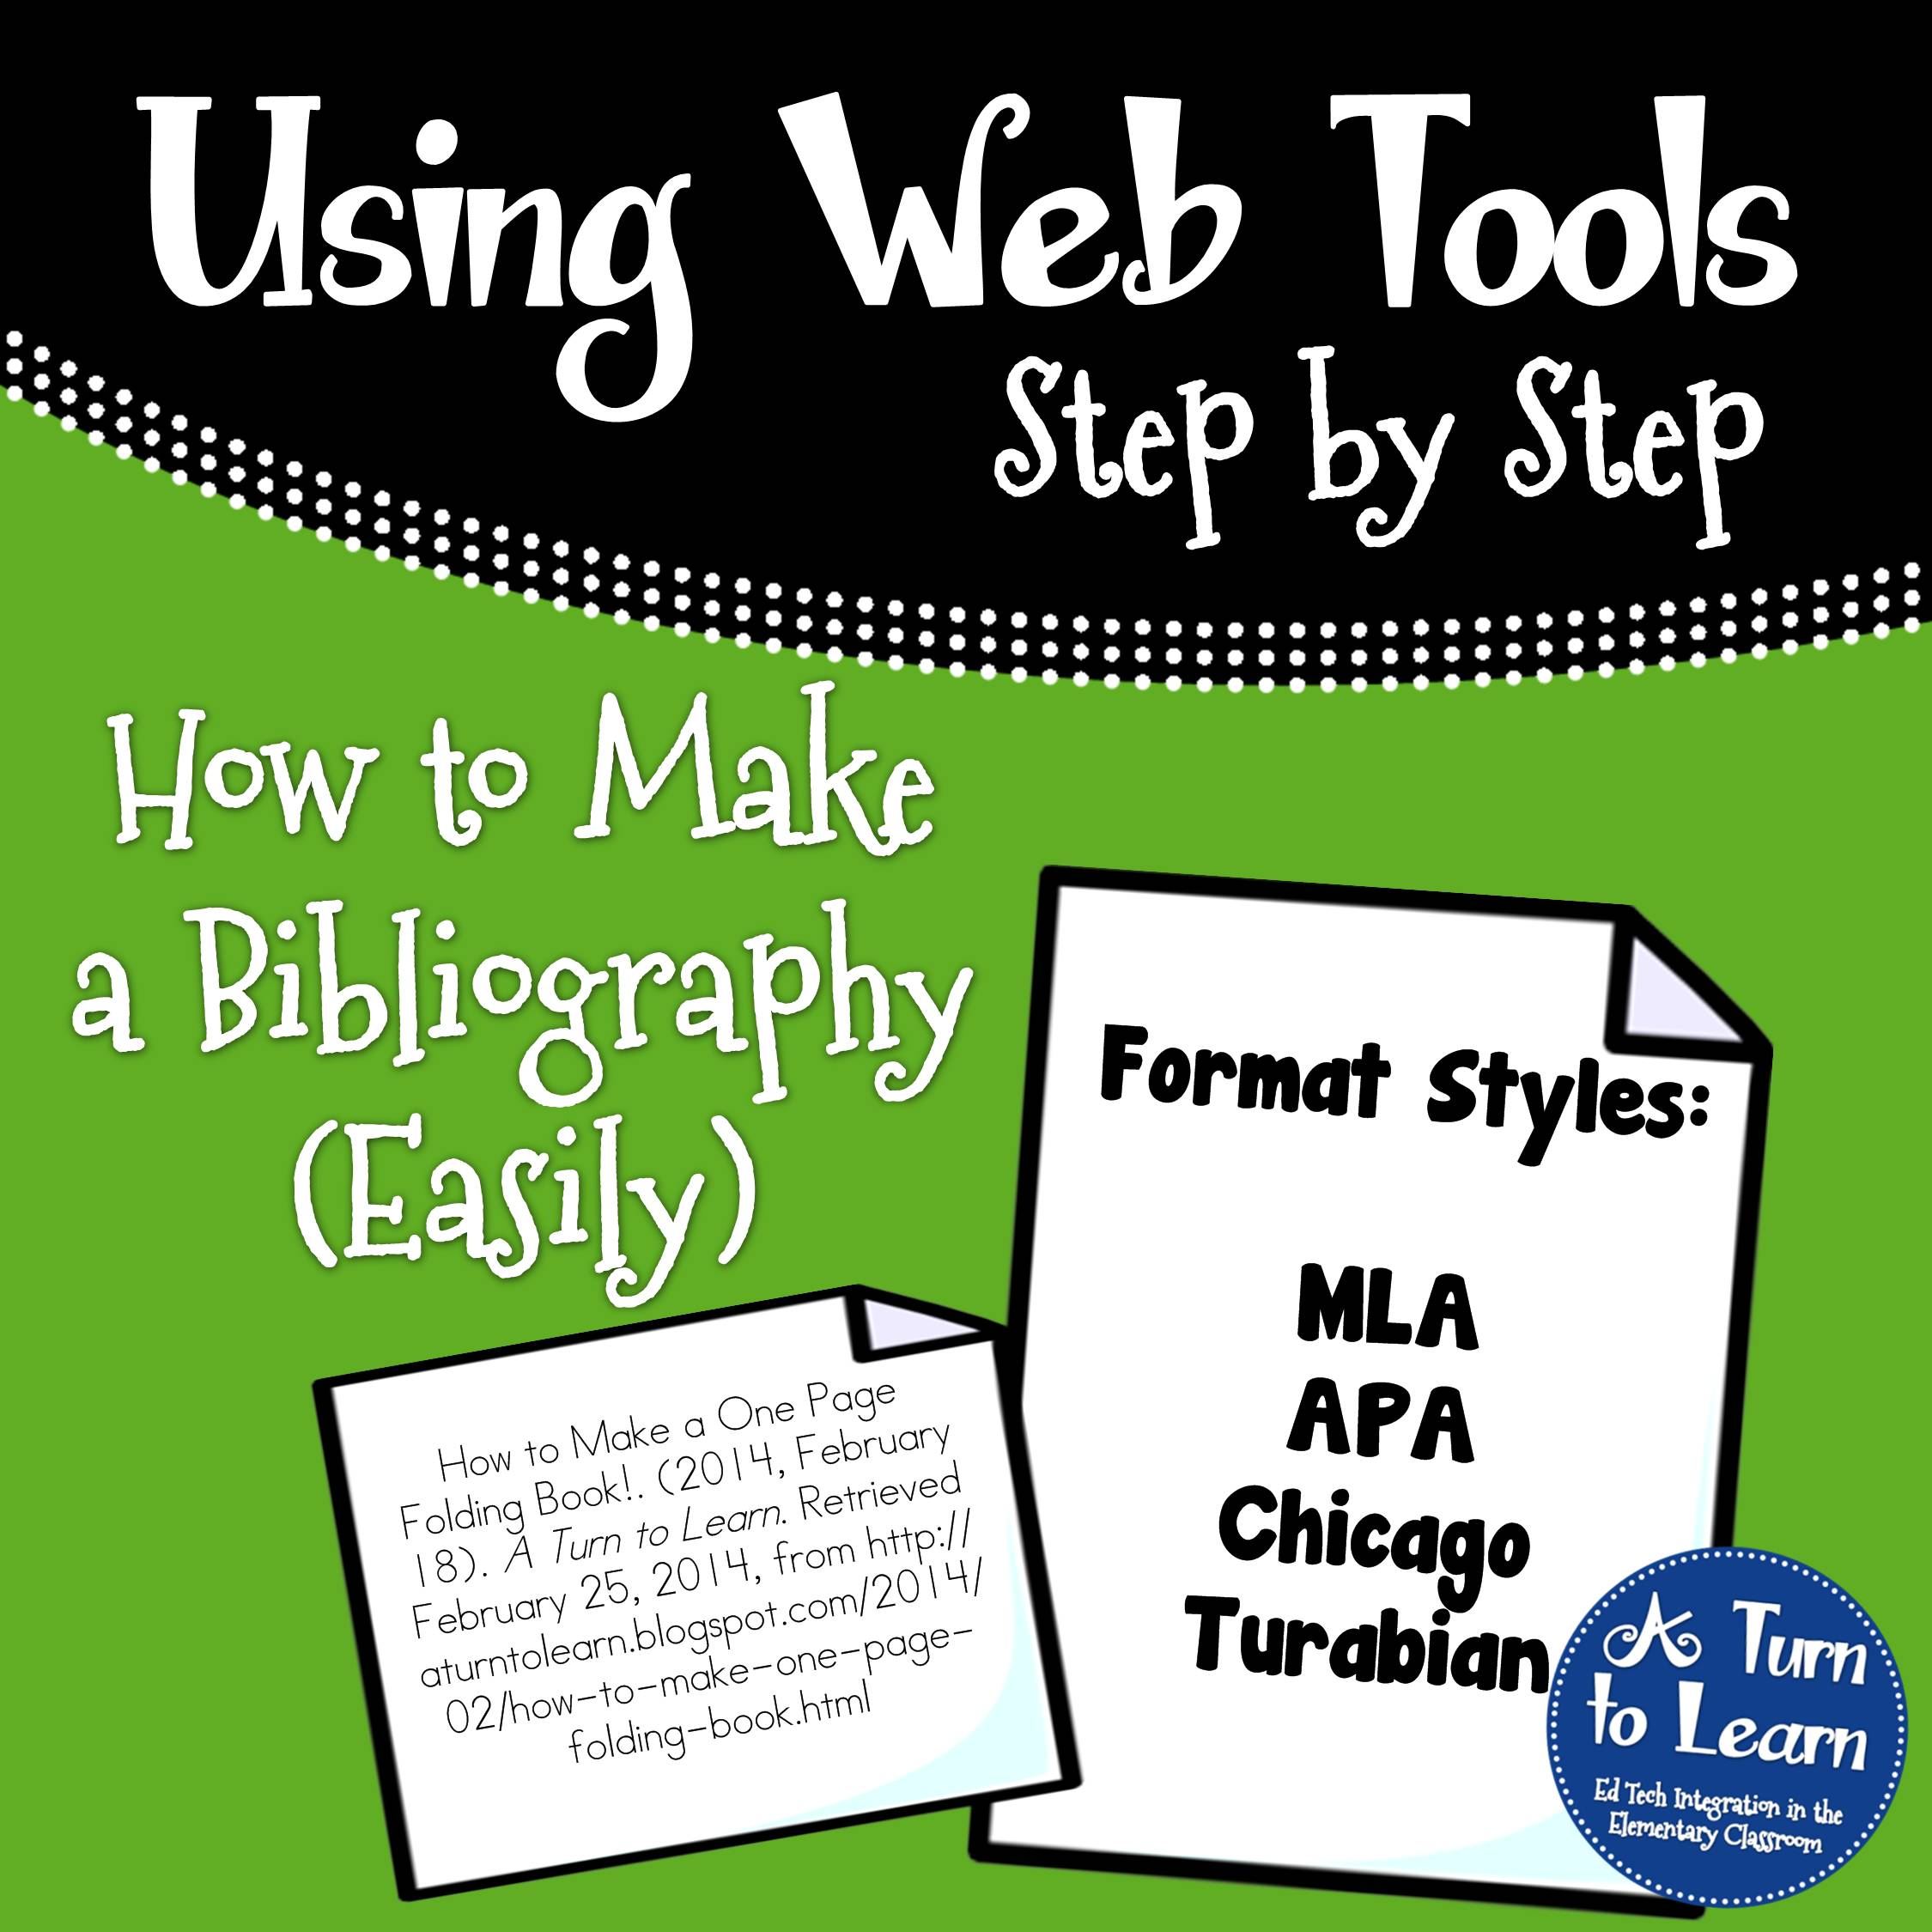 How to make a bibliography